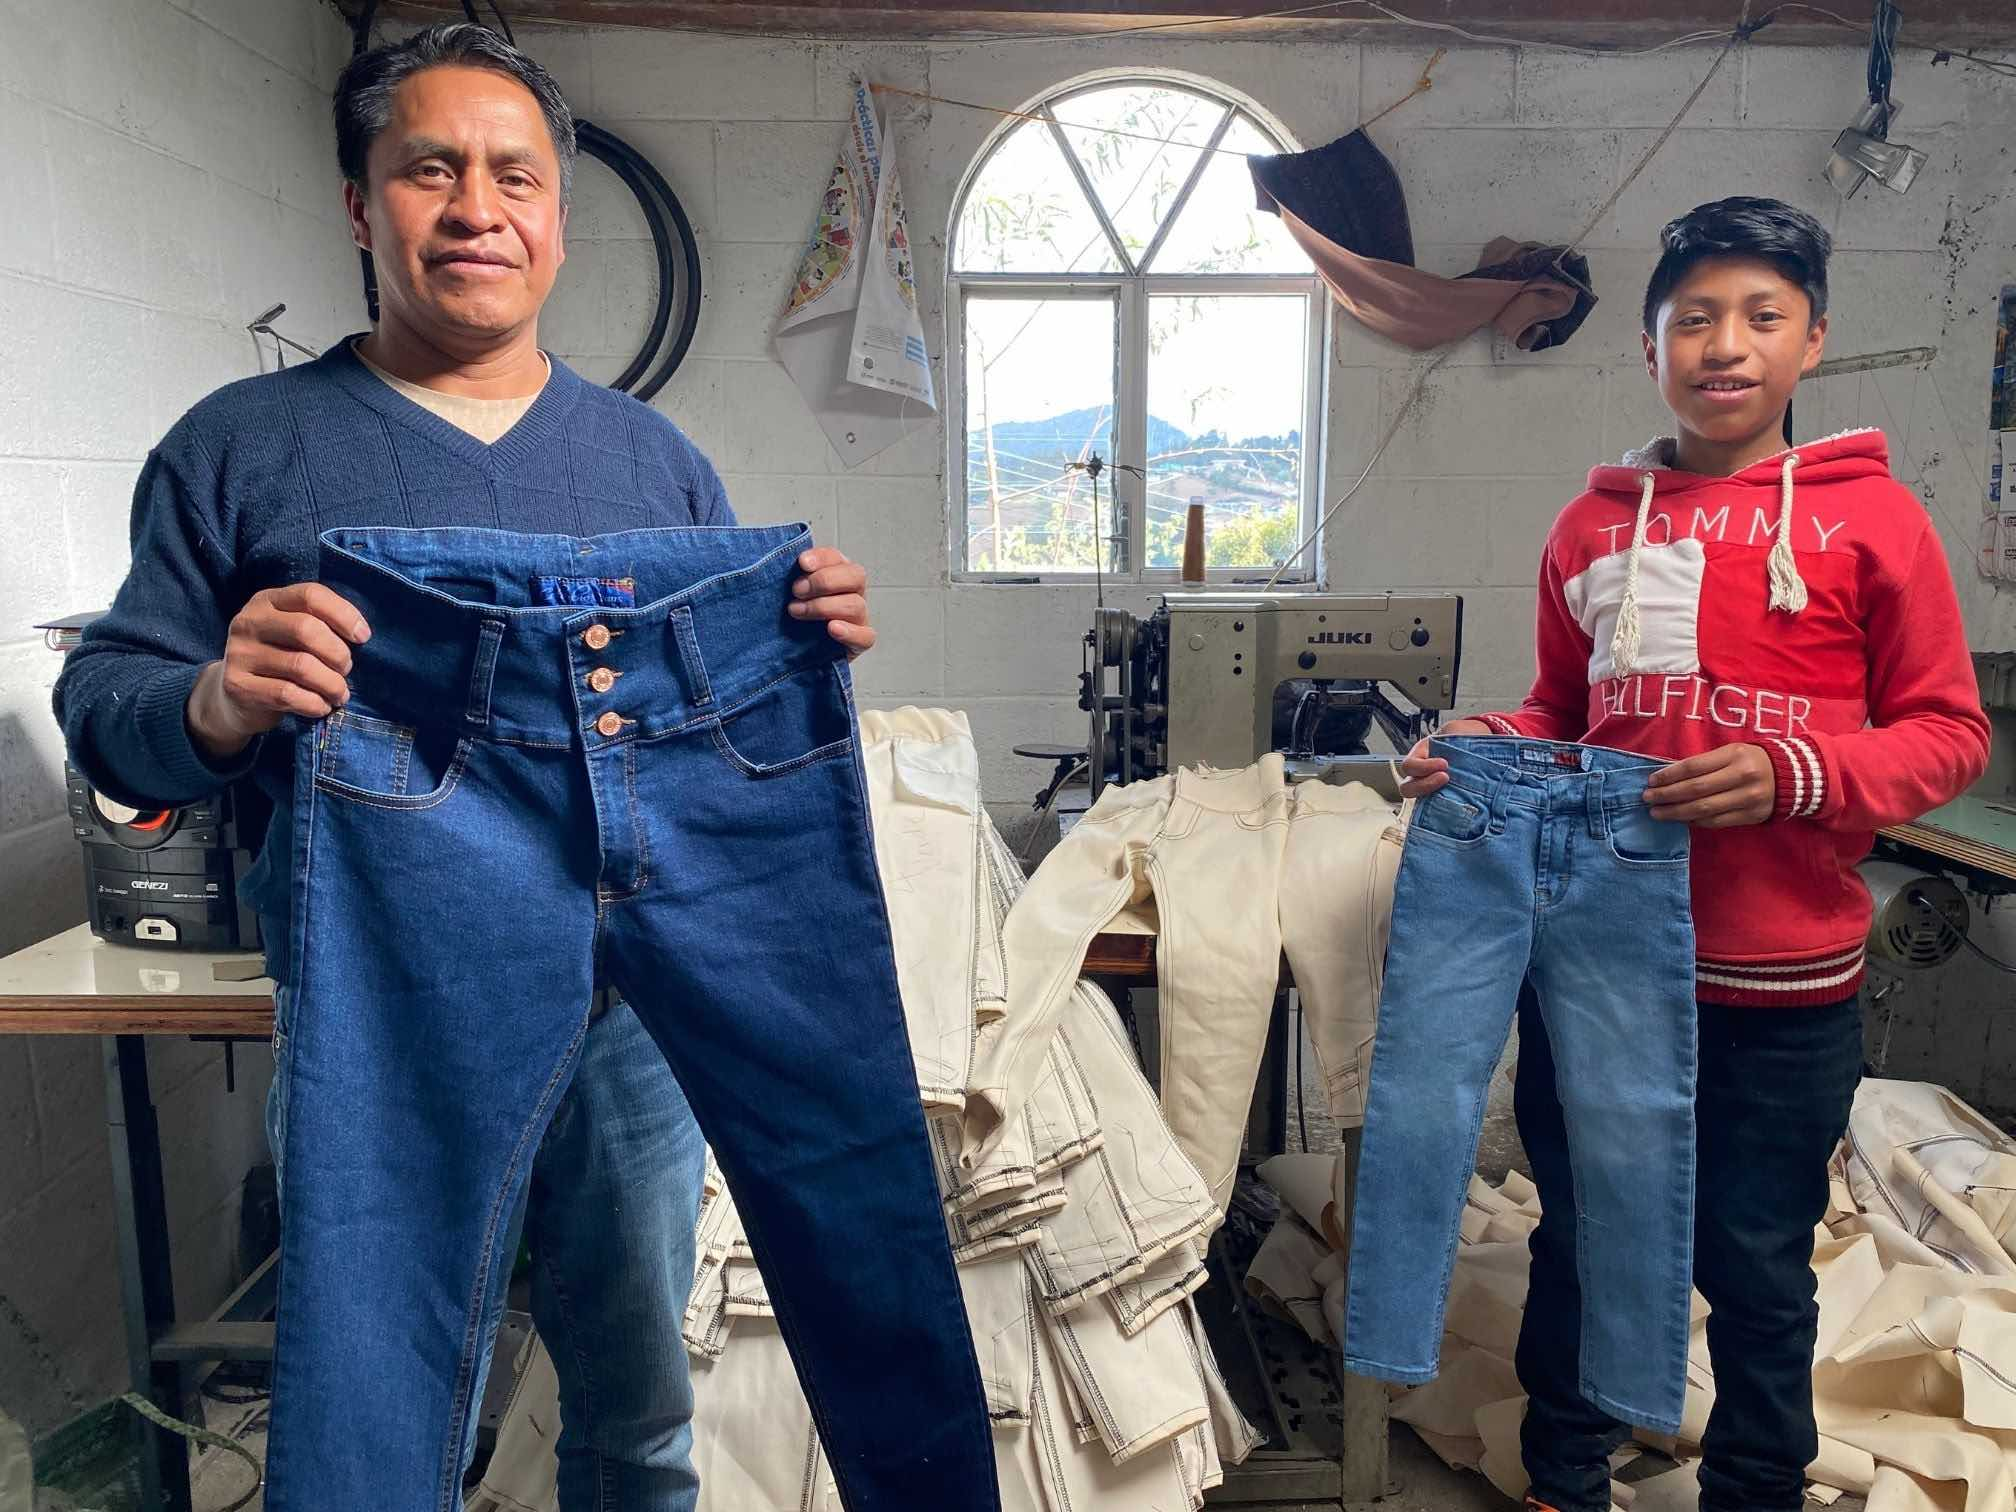 Father and son holding up pair of pants